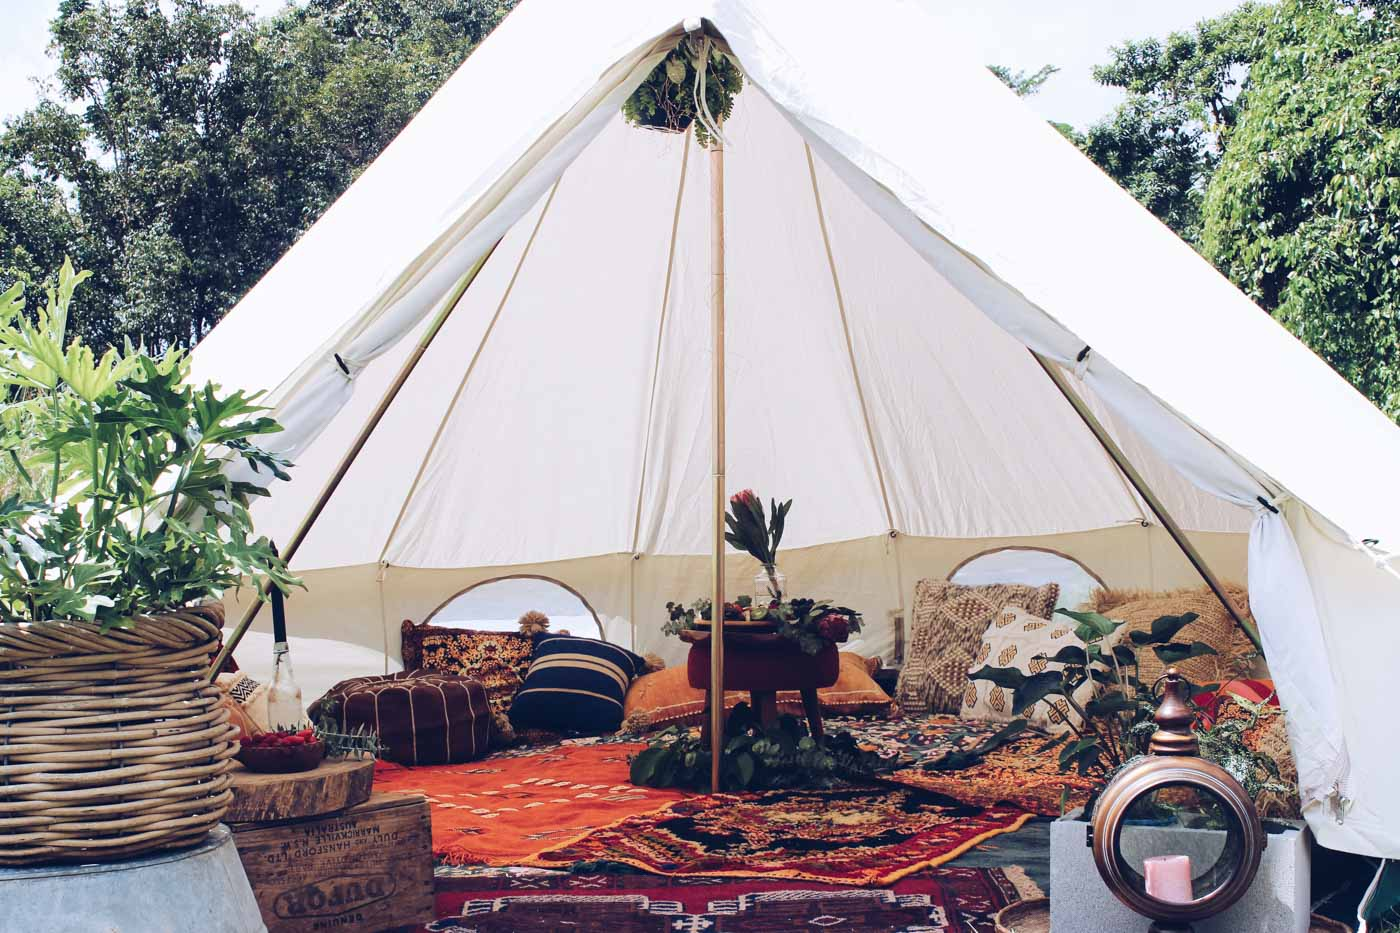 the_Collection_co_grazing_table_cairns_weddings_catering_grazing_platter_hire_pop_up_picnic_bell_tent_event_hire_styling-28-2.jpg